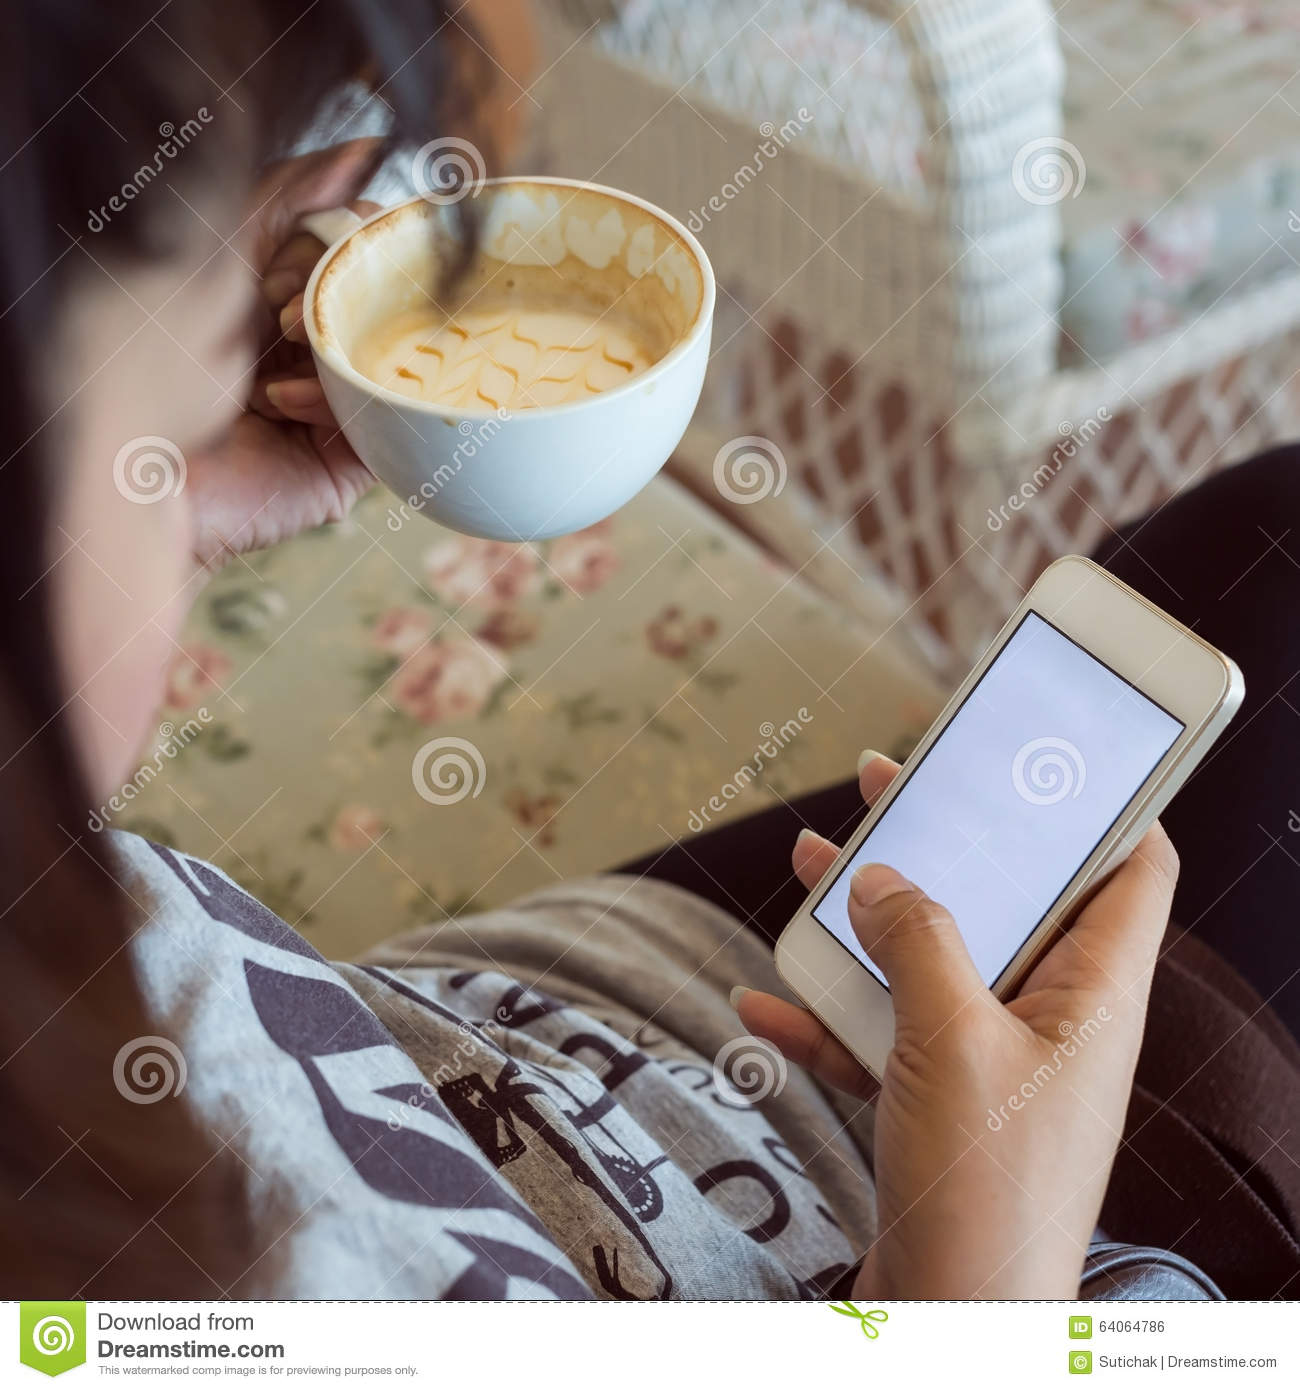 Woman drinking hot coffee in cafe and use a mobile phone